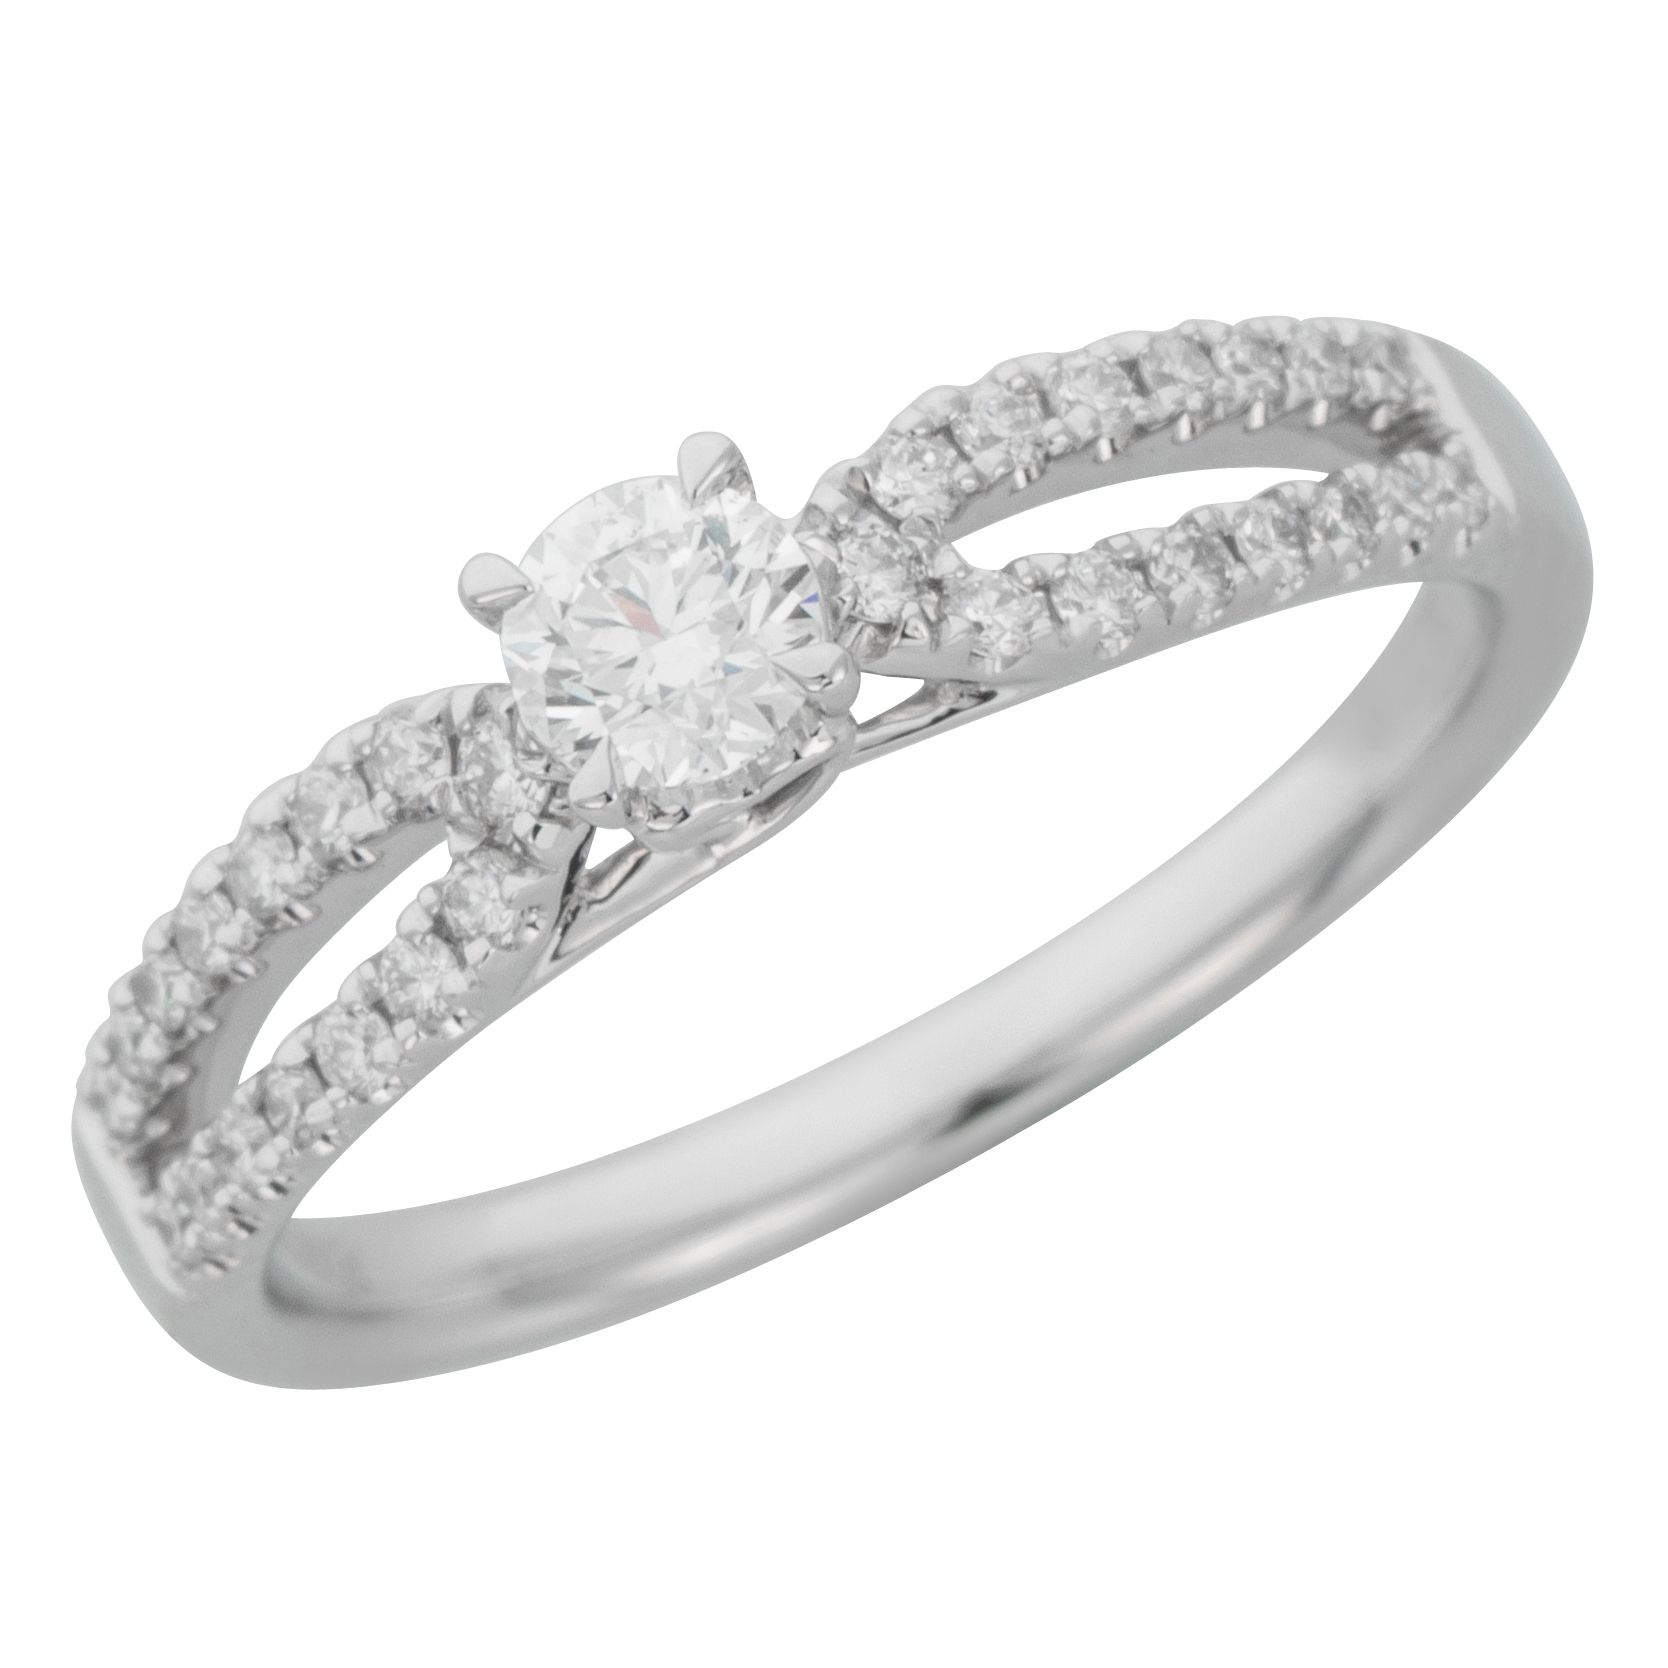 h princess pughsdiamonds diamonds white product engagement diamond rings with com ring gold cut solitaire